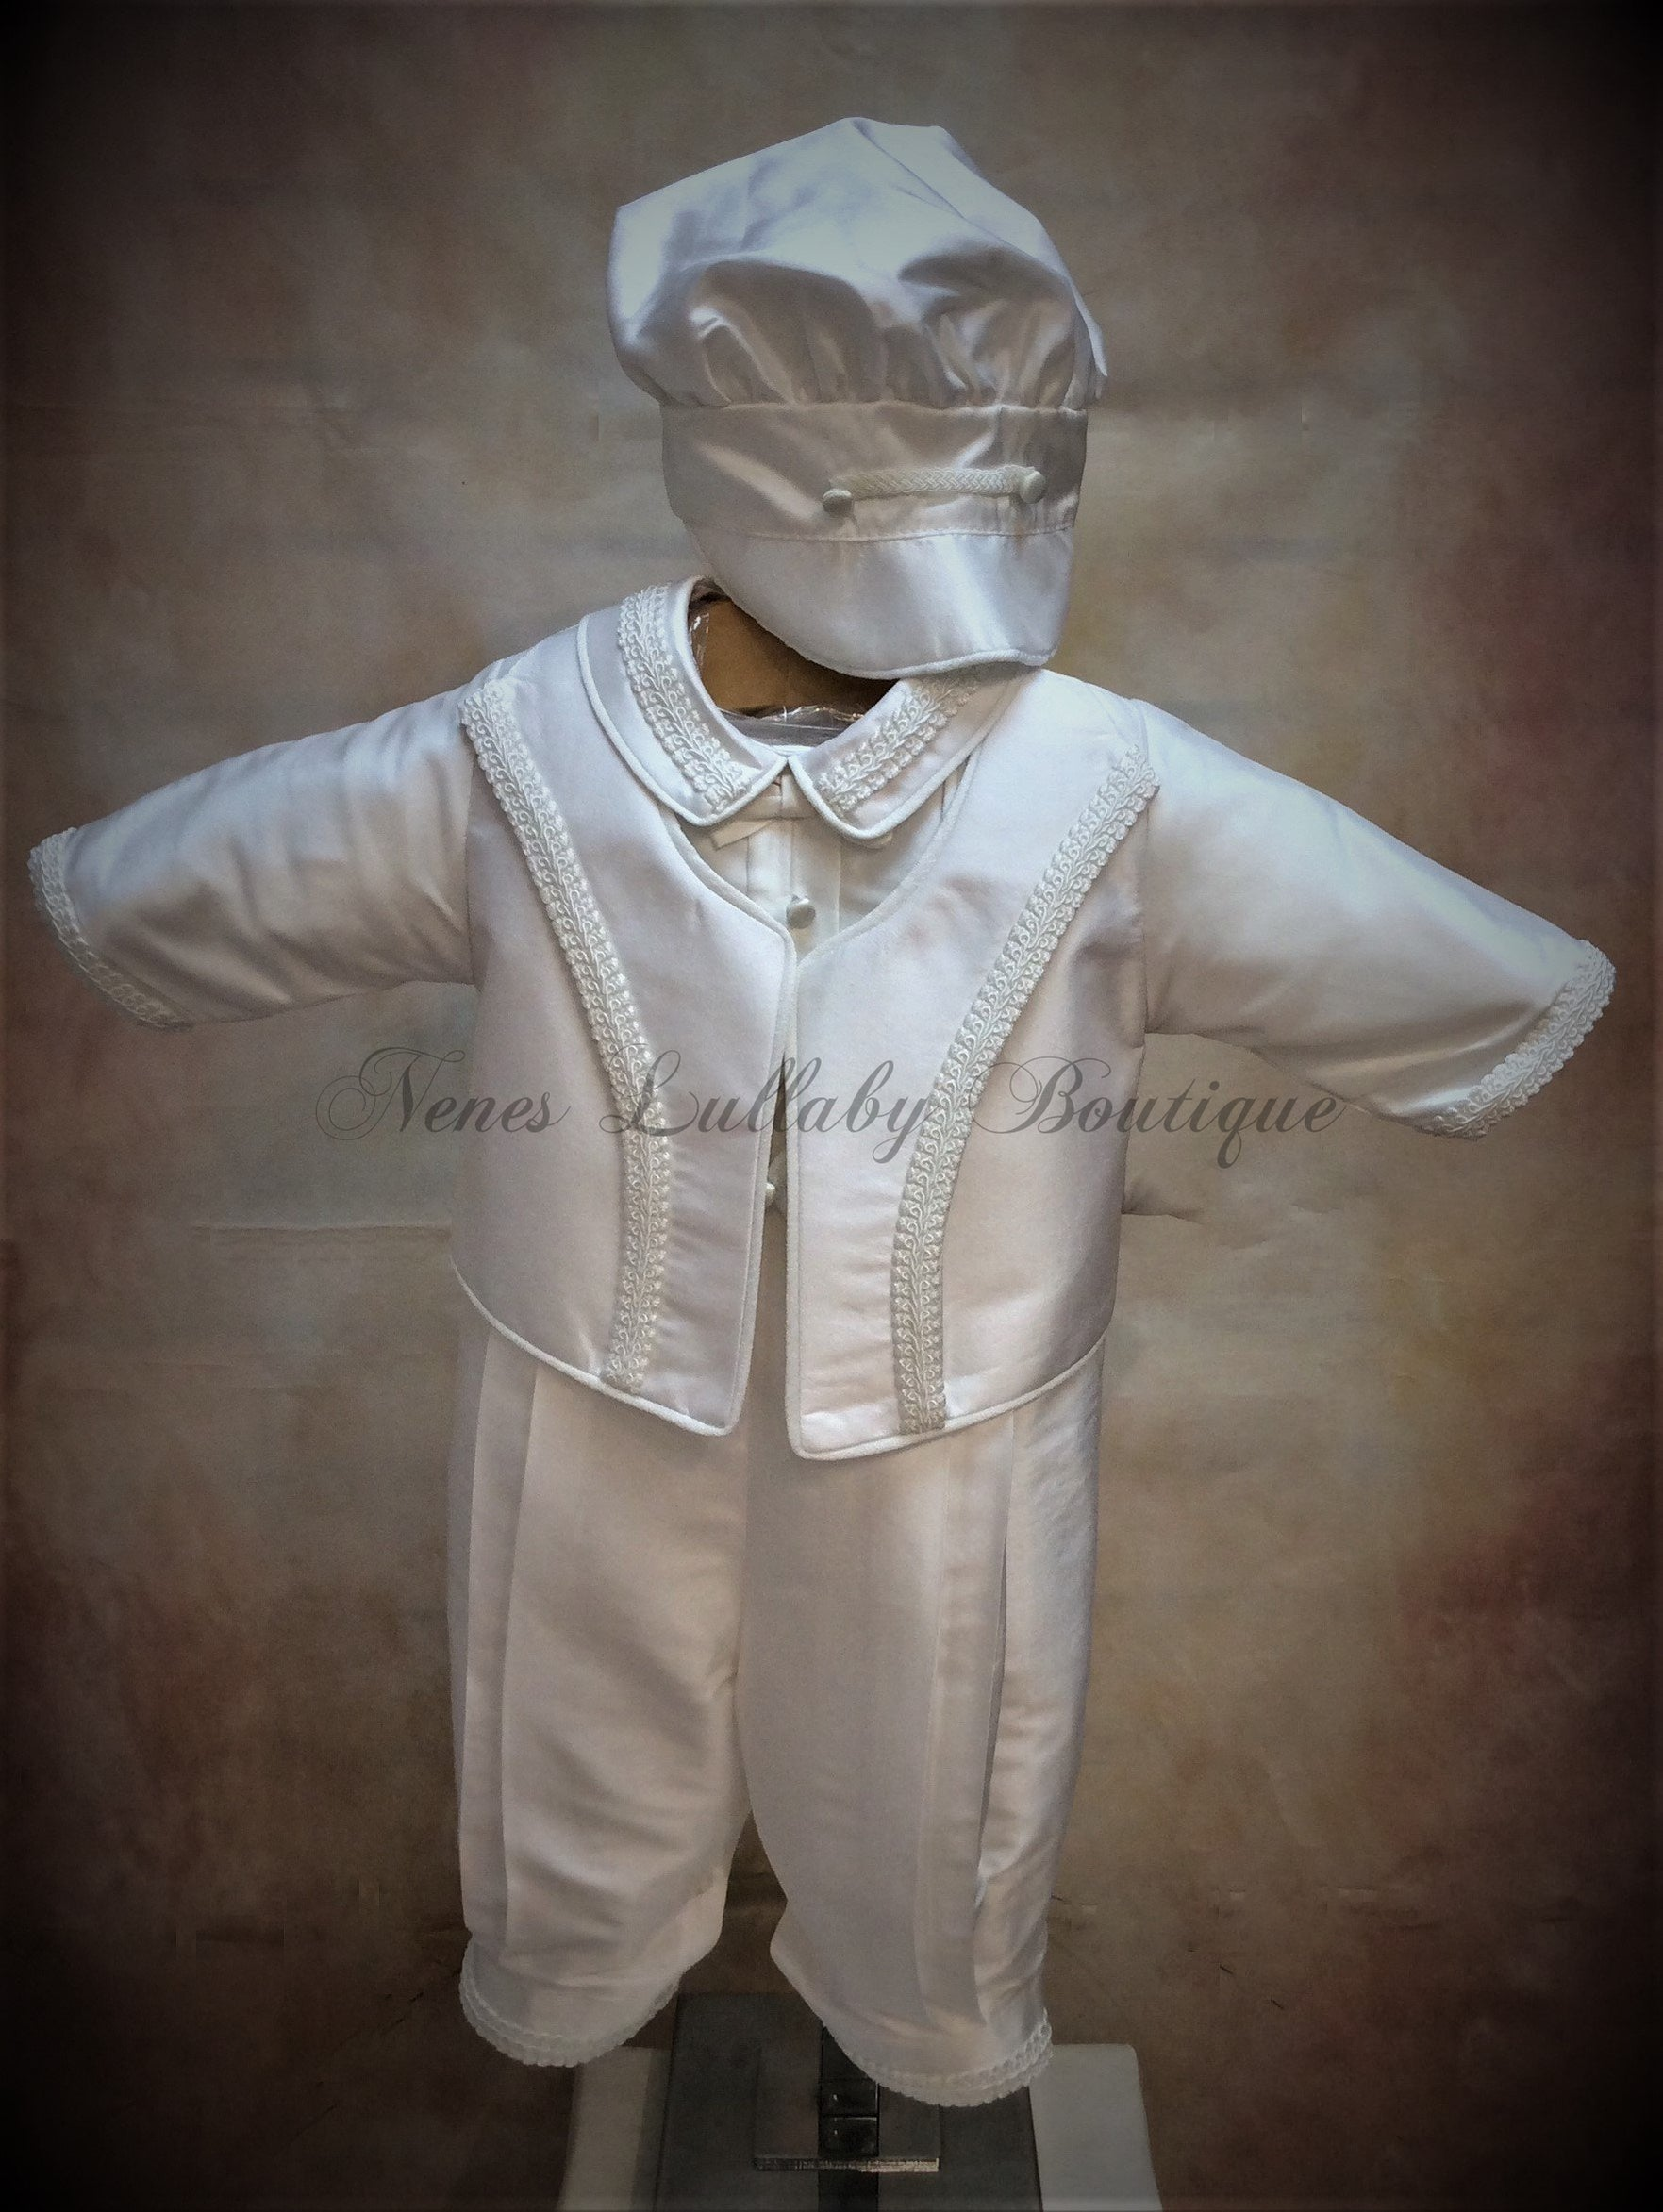 Franco Boys White Silk  Christening suit by Piccolo Bacio PB_Franco_ws_lp - Nenes Lullaby Boutique Inc